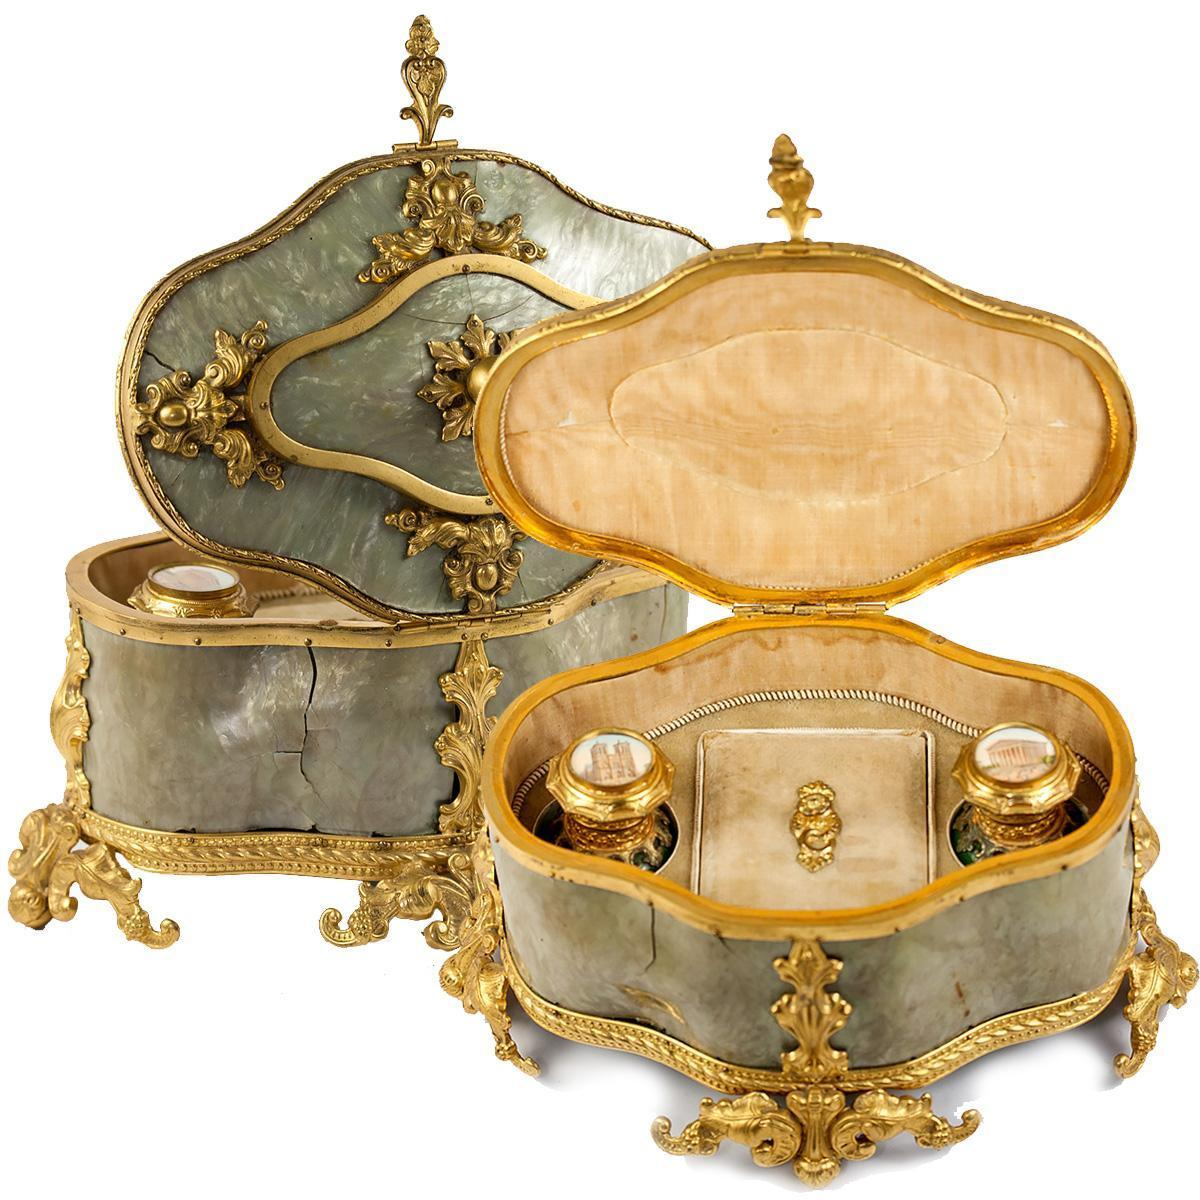 Antique French Eglomise Scent Bottles in Necessaire, Casket of Ormolu & Faux MOP, Green Opaline